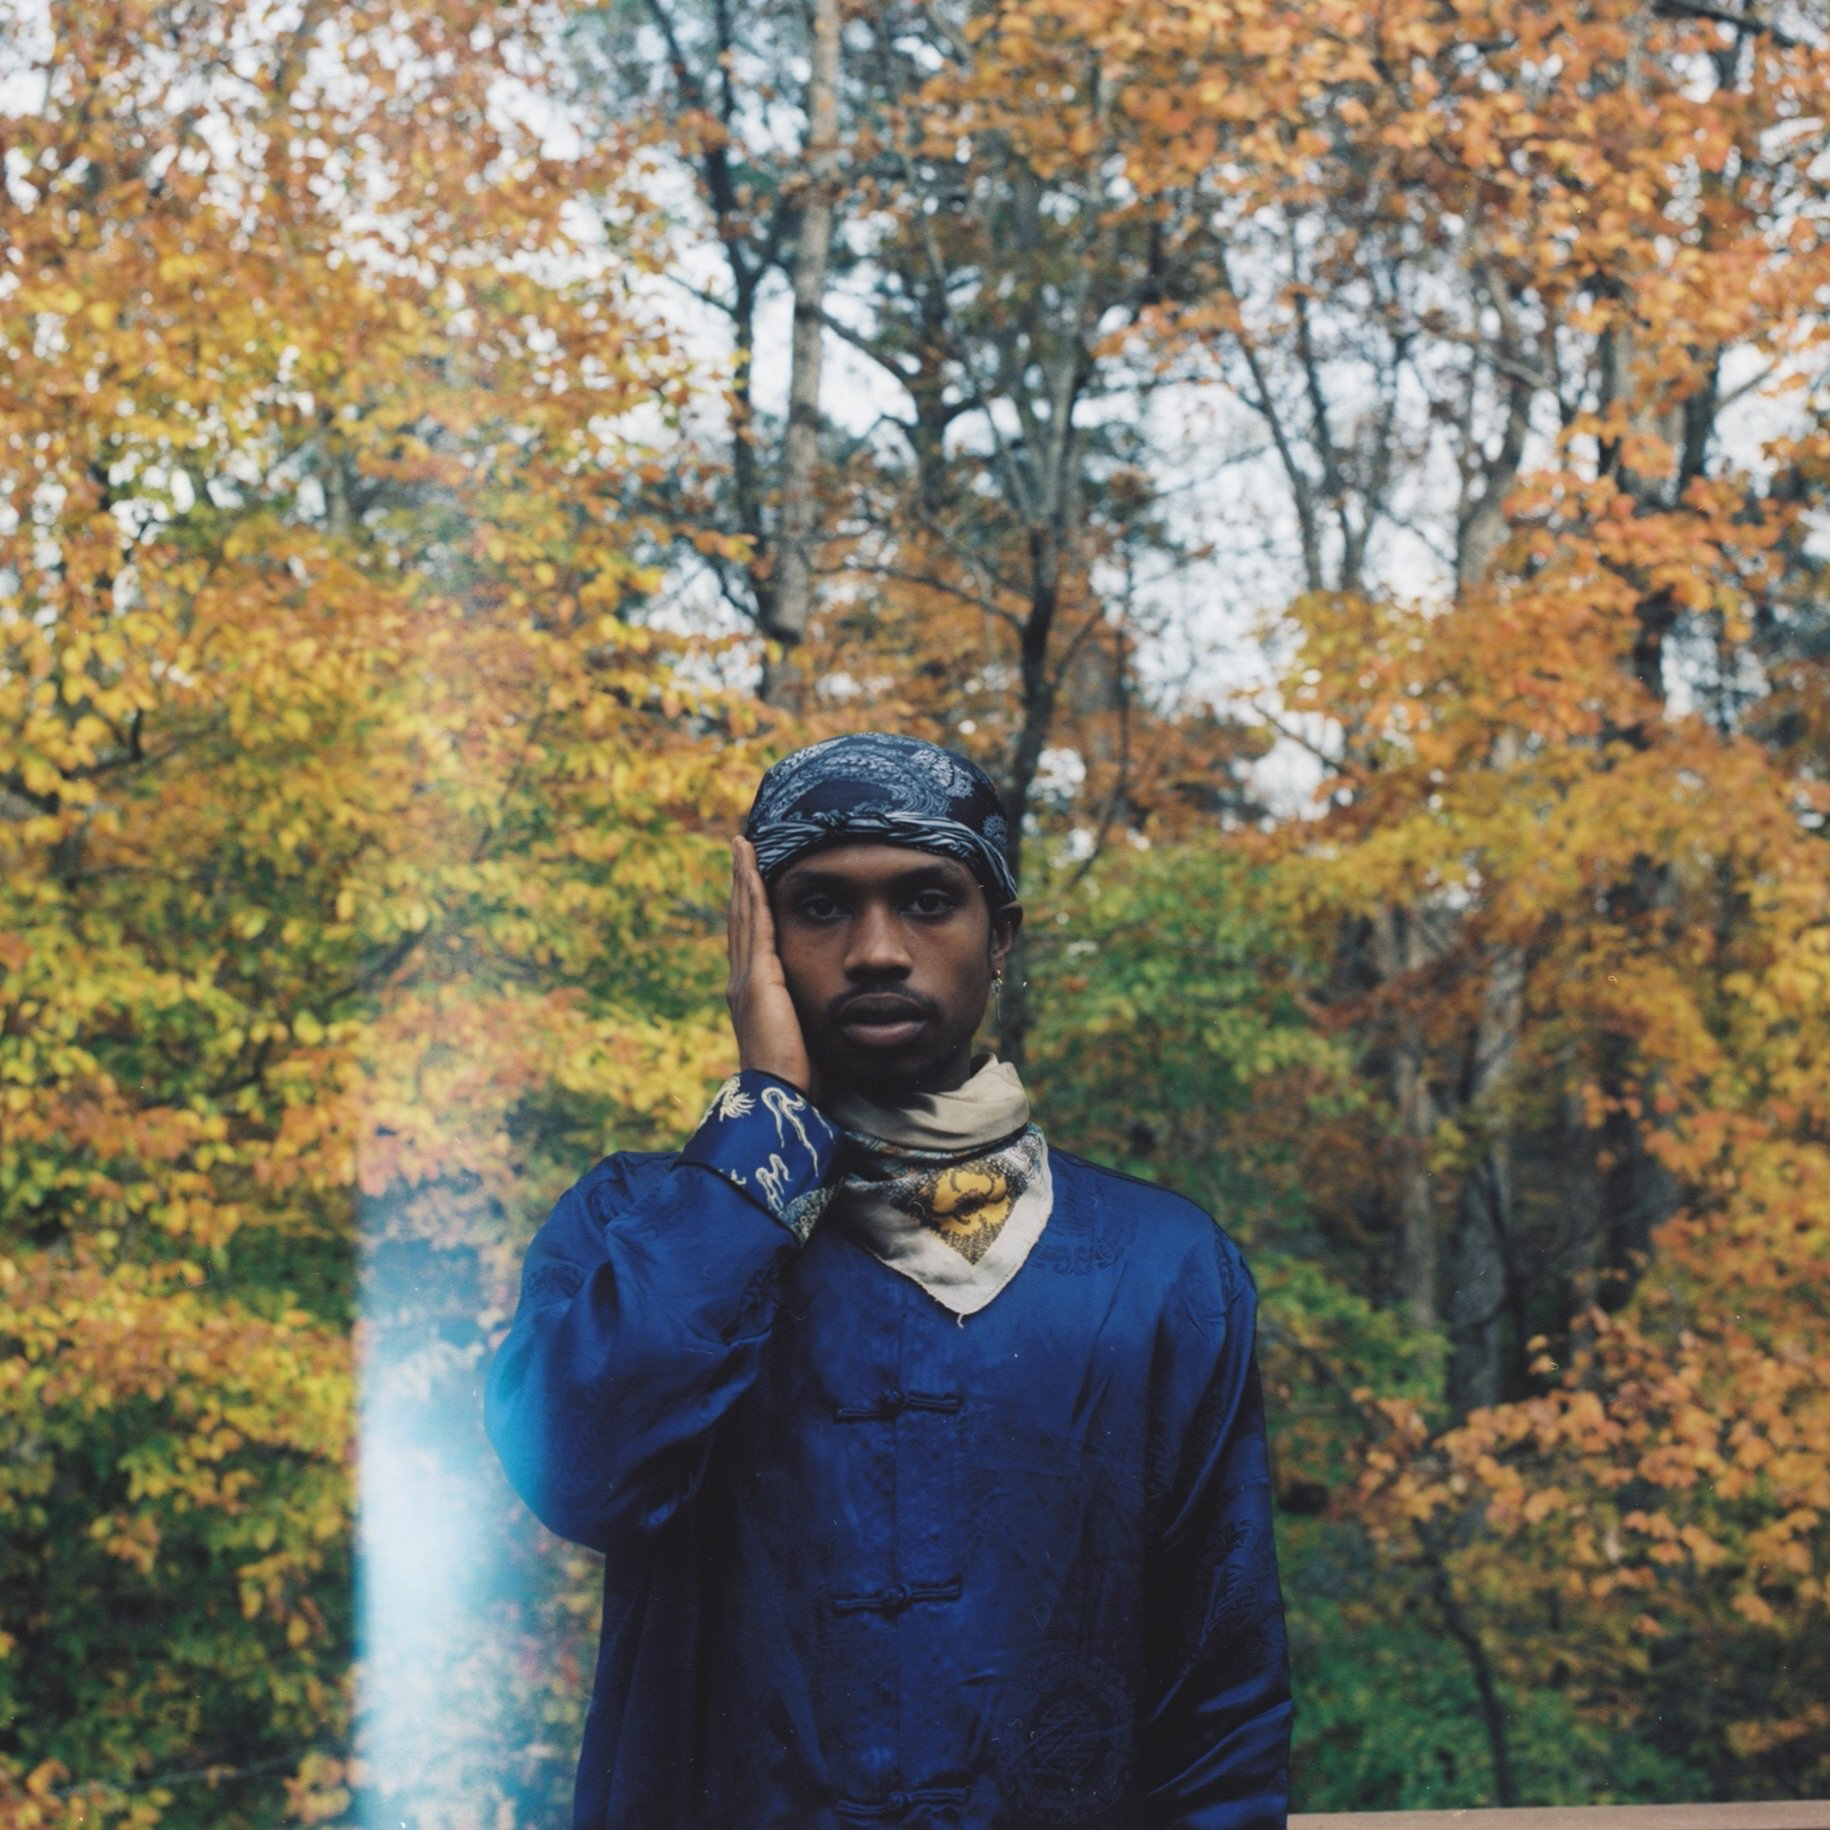 Surprise! @Raury just dropped 22 new songs �� https://t.co/BBk1OktGey https://t.co/15SmI1YRYO